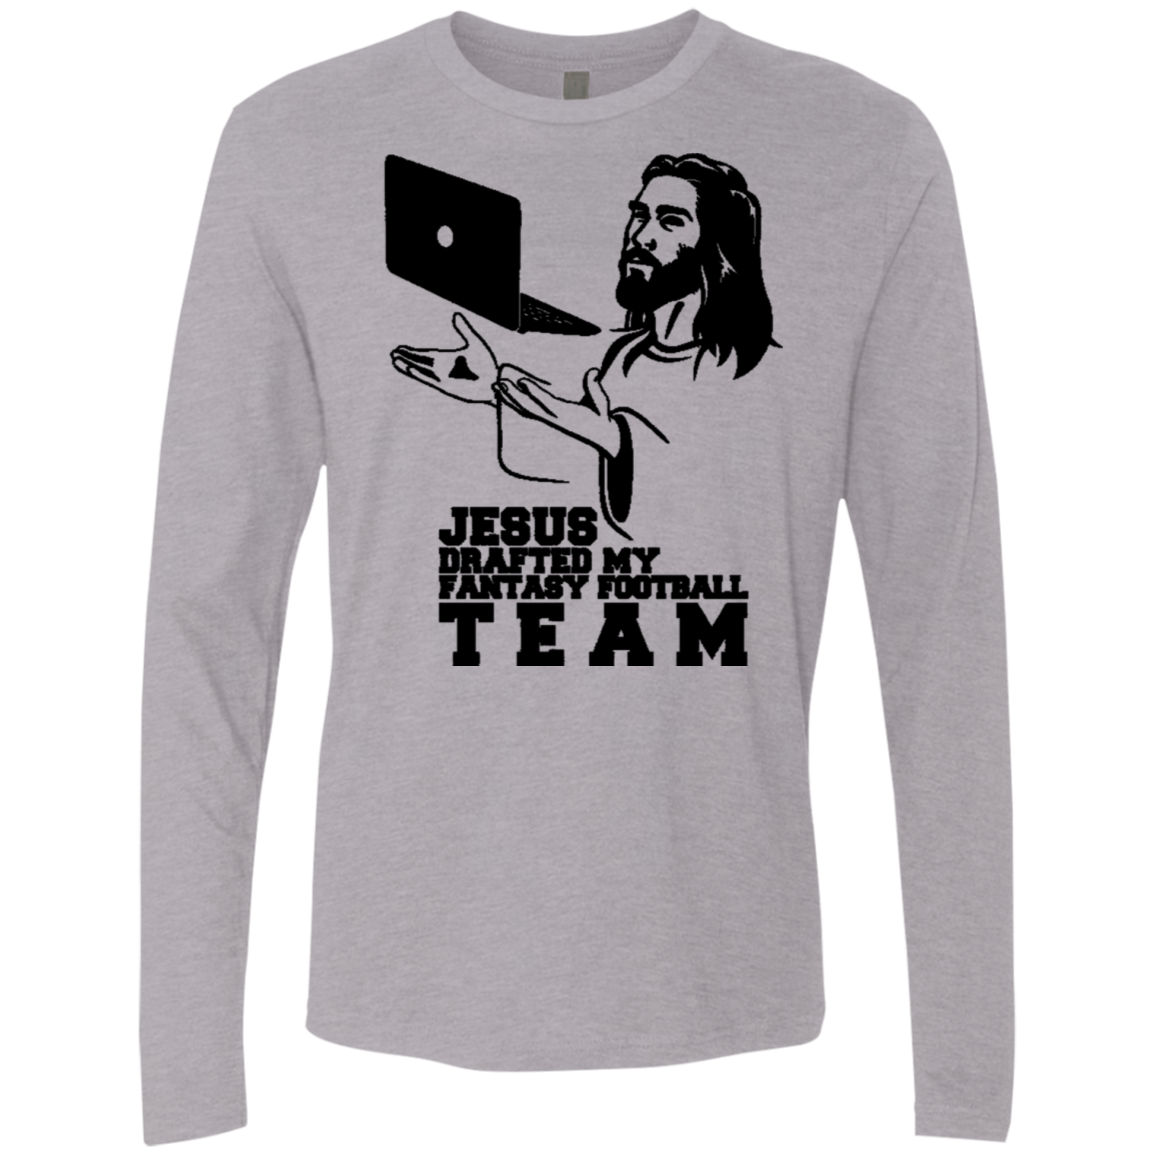 Jesus Drafted My Fantasy Football Team Men's Long Sleeve Tee